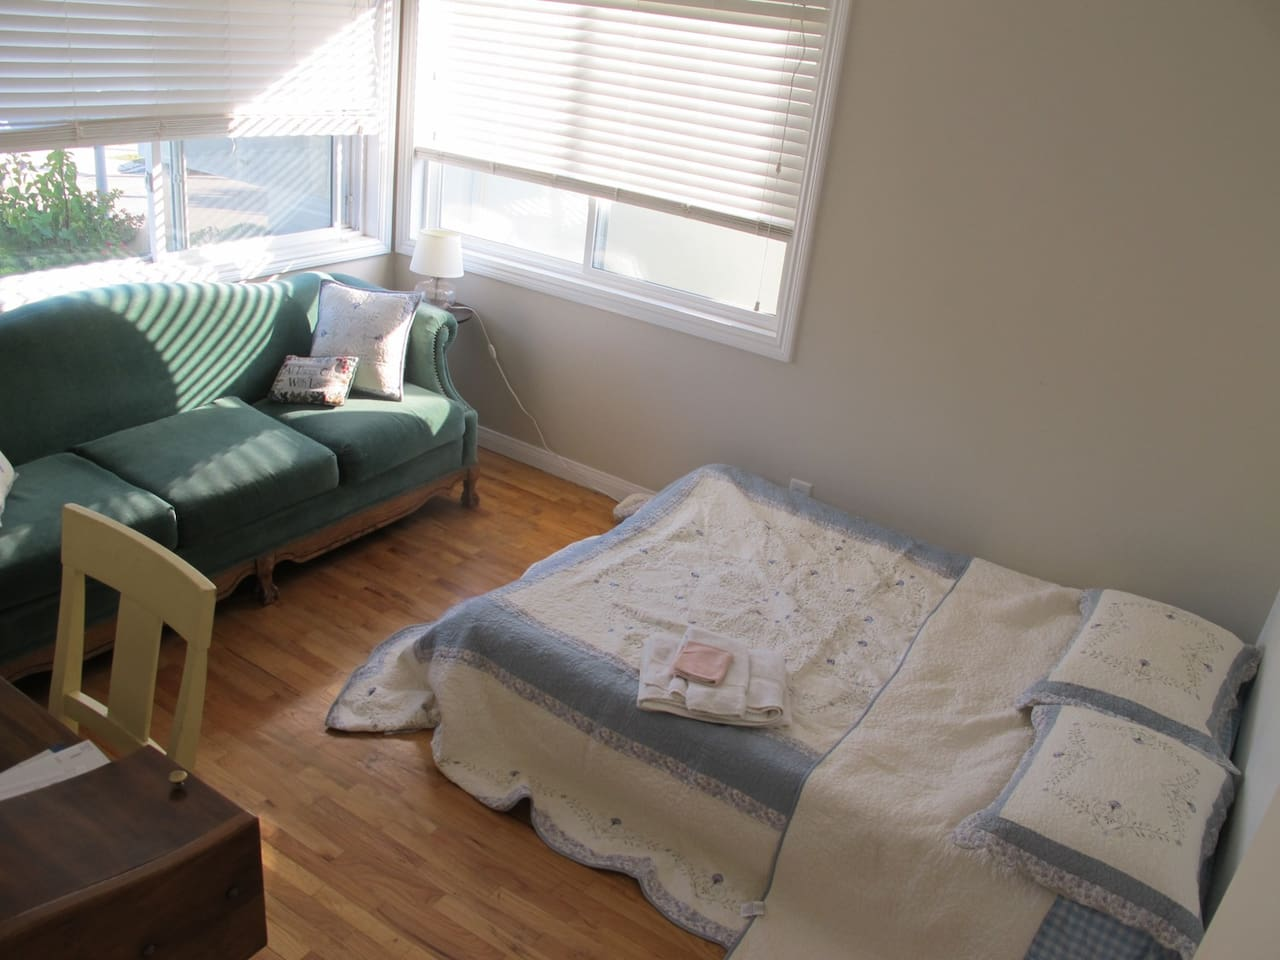 Guest bedroom with couch, desk, and queen sized mattress.